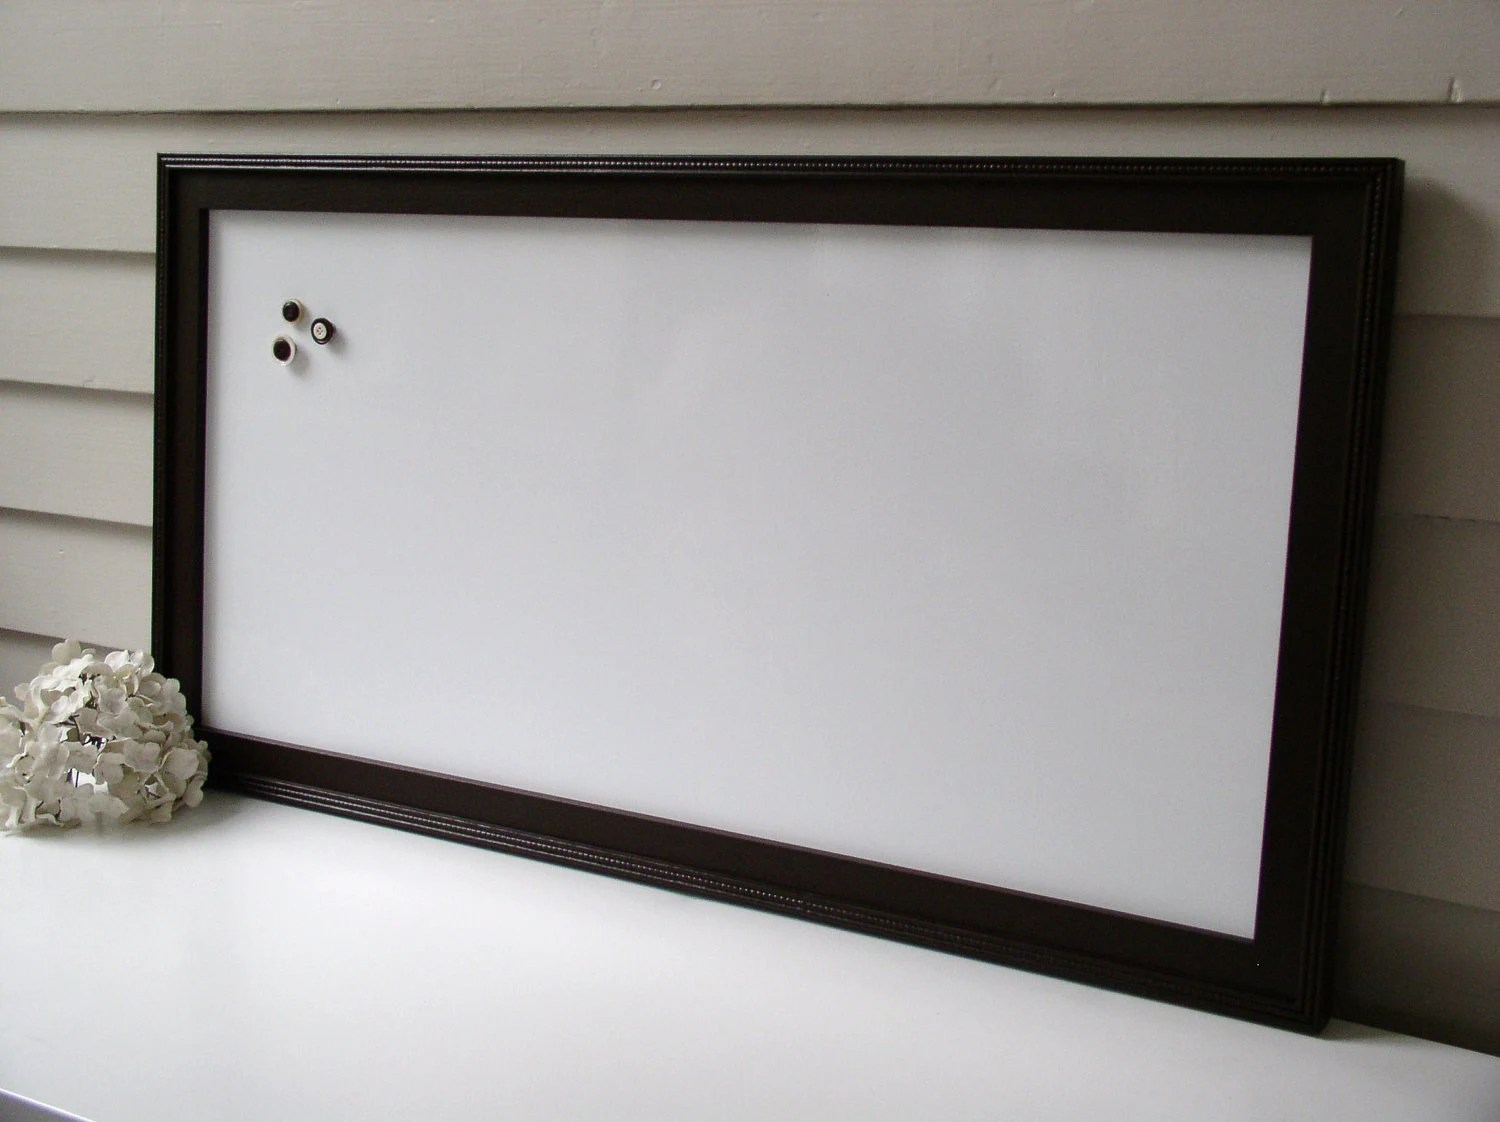 Espresso Brown Magnetic Dry Erase Board Whiteboard Bulletin